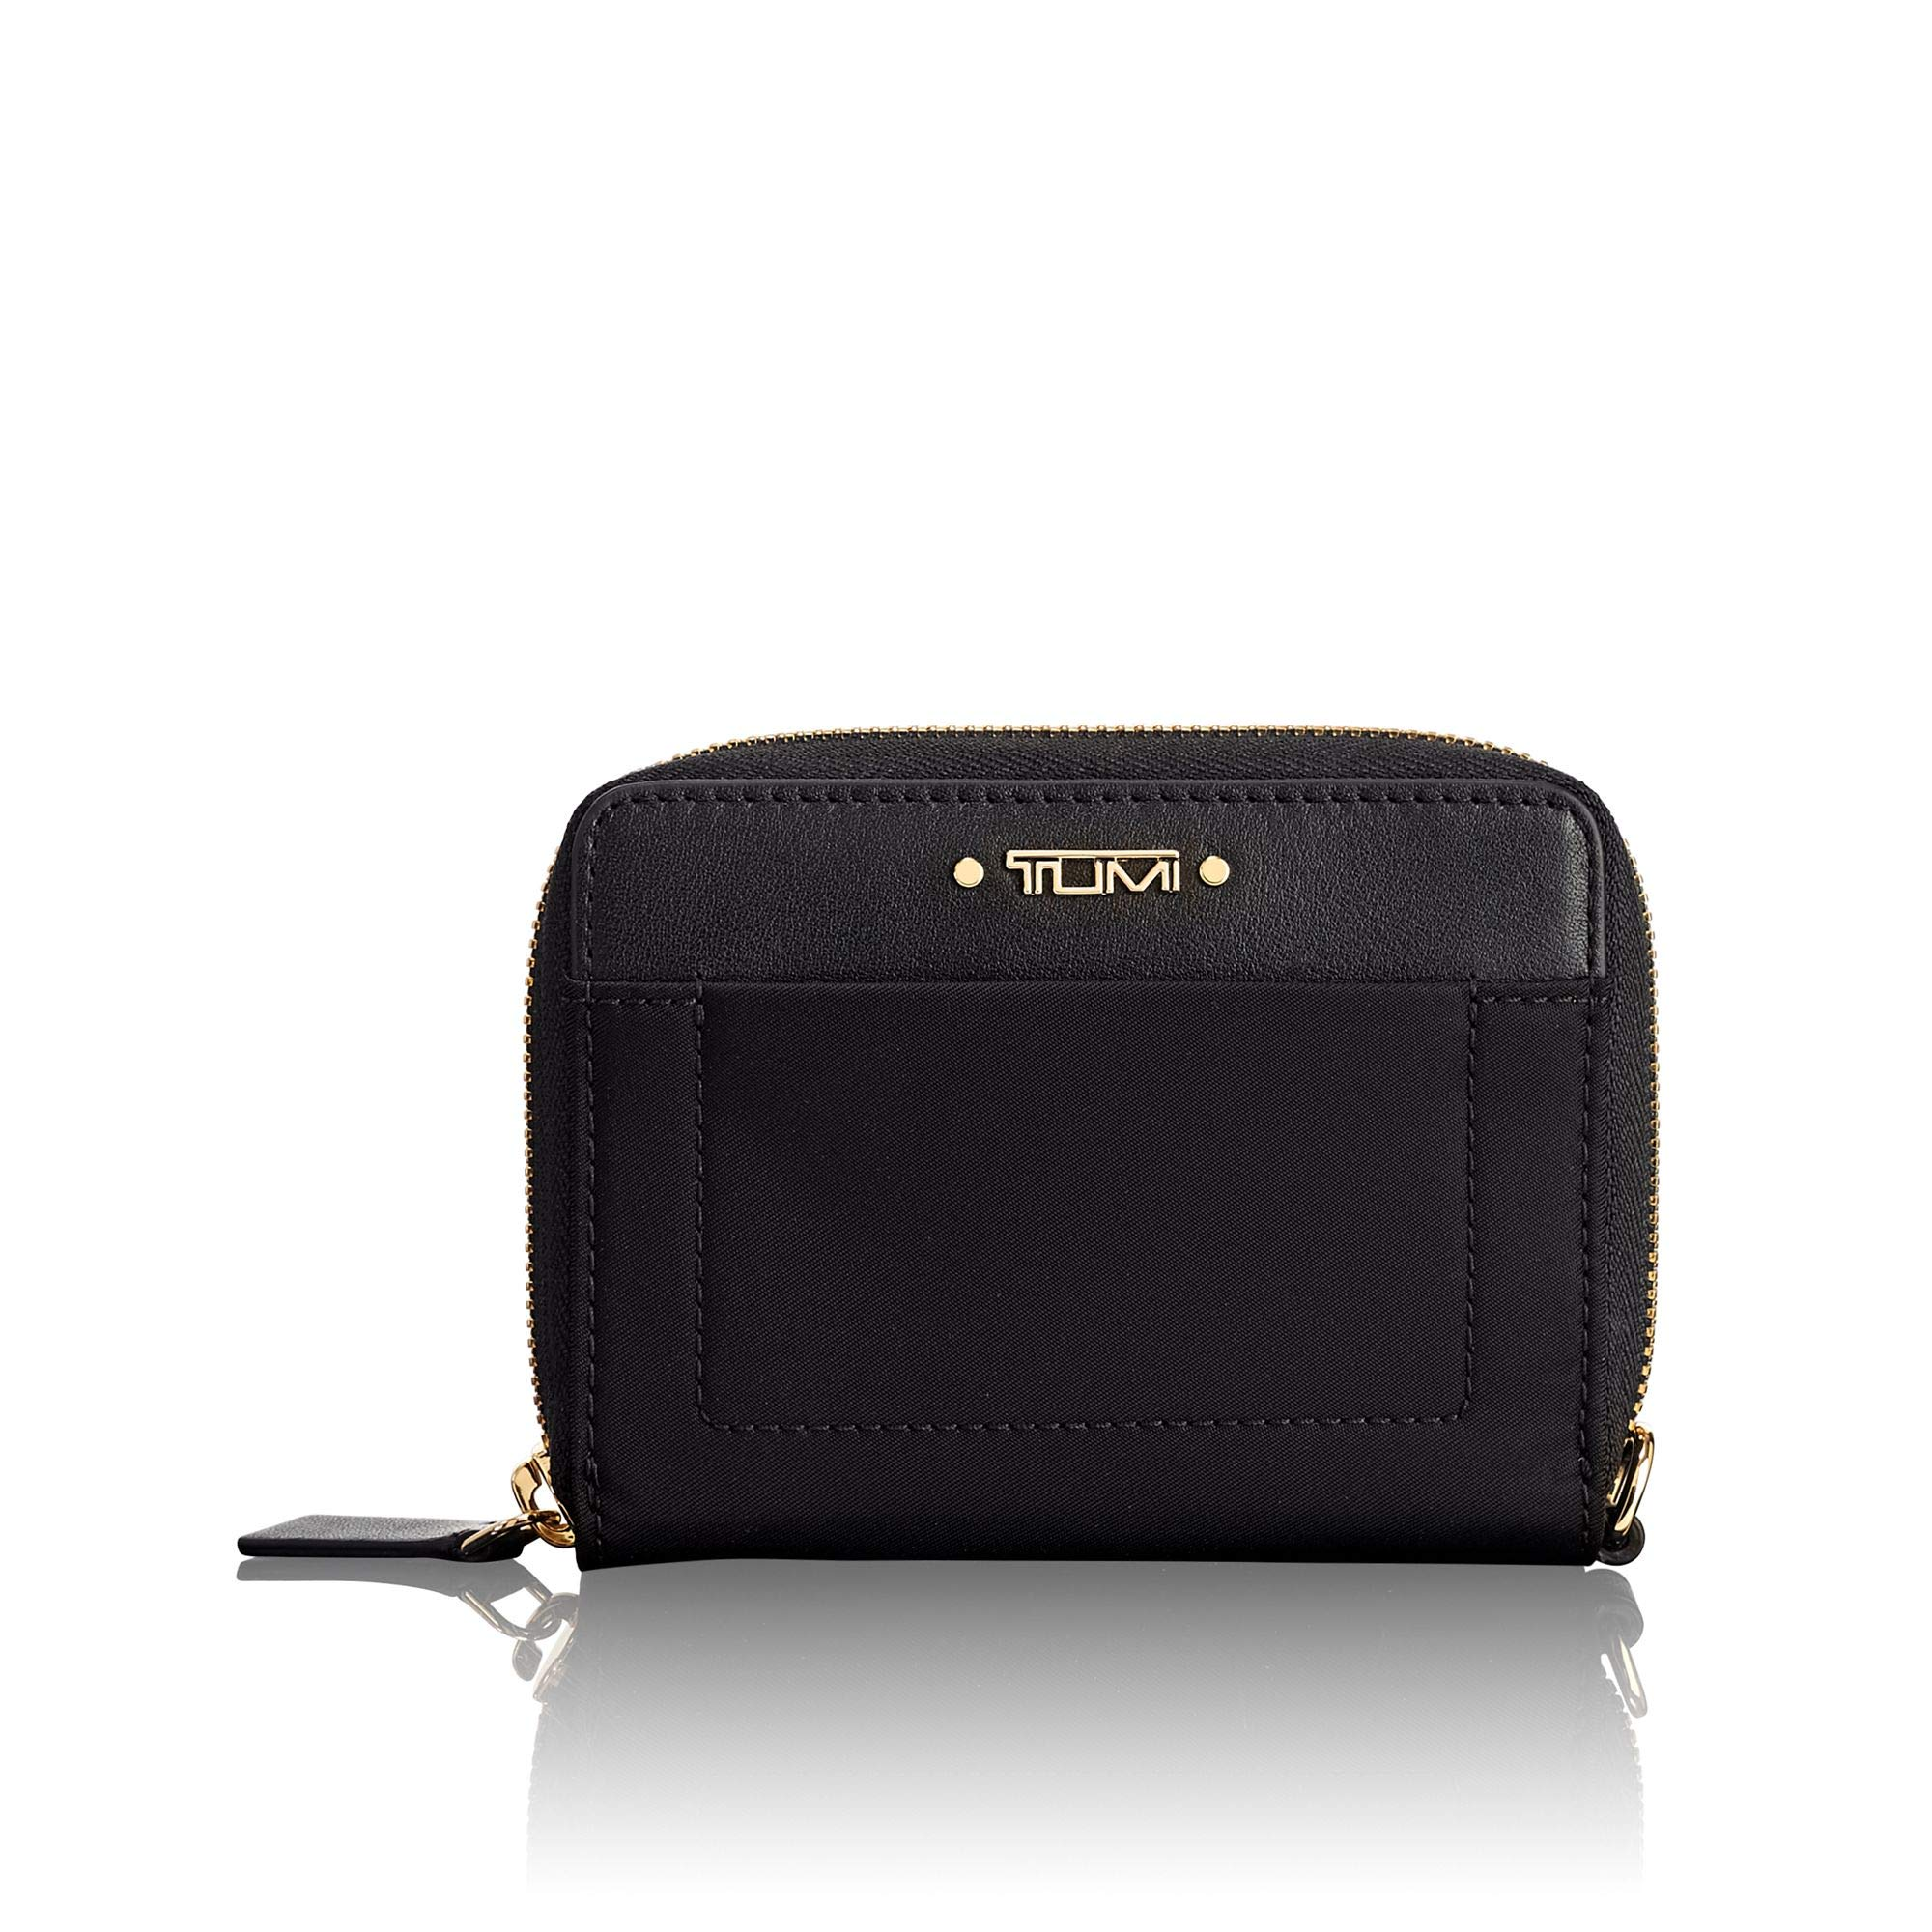 TUMI - Voyageur Tri-Fold Zip-Around Wallet - Compact Card Holder for Women - Black by TUMI